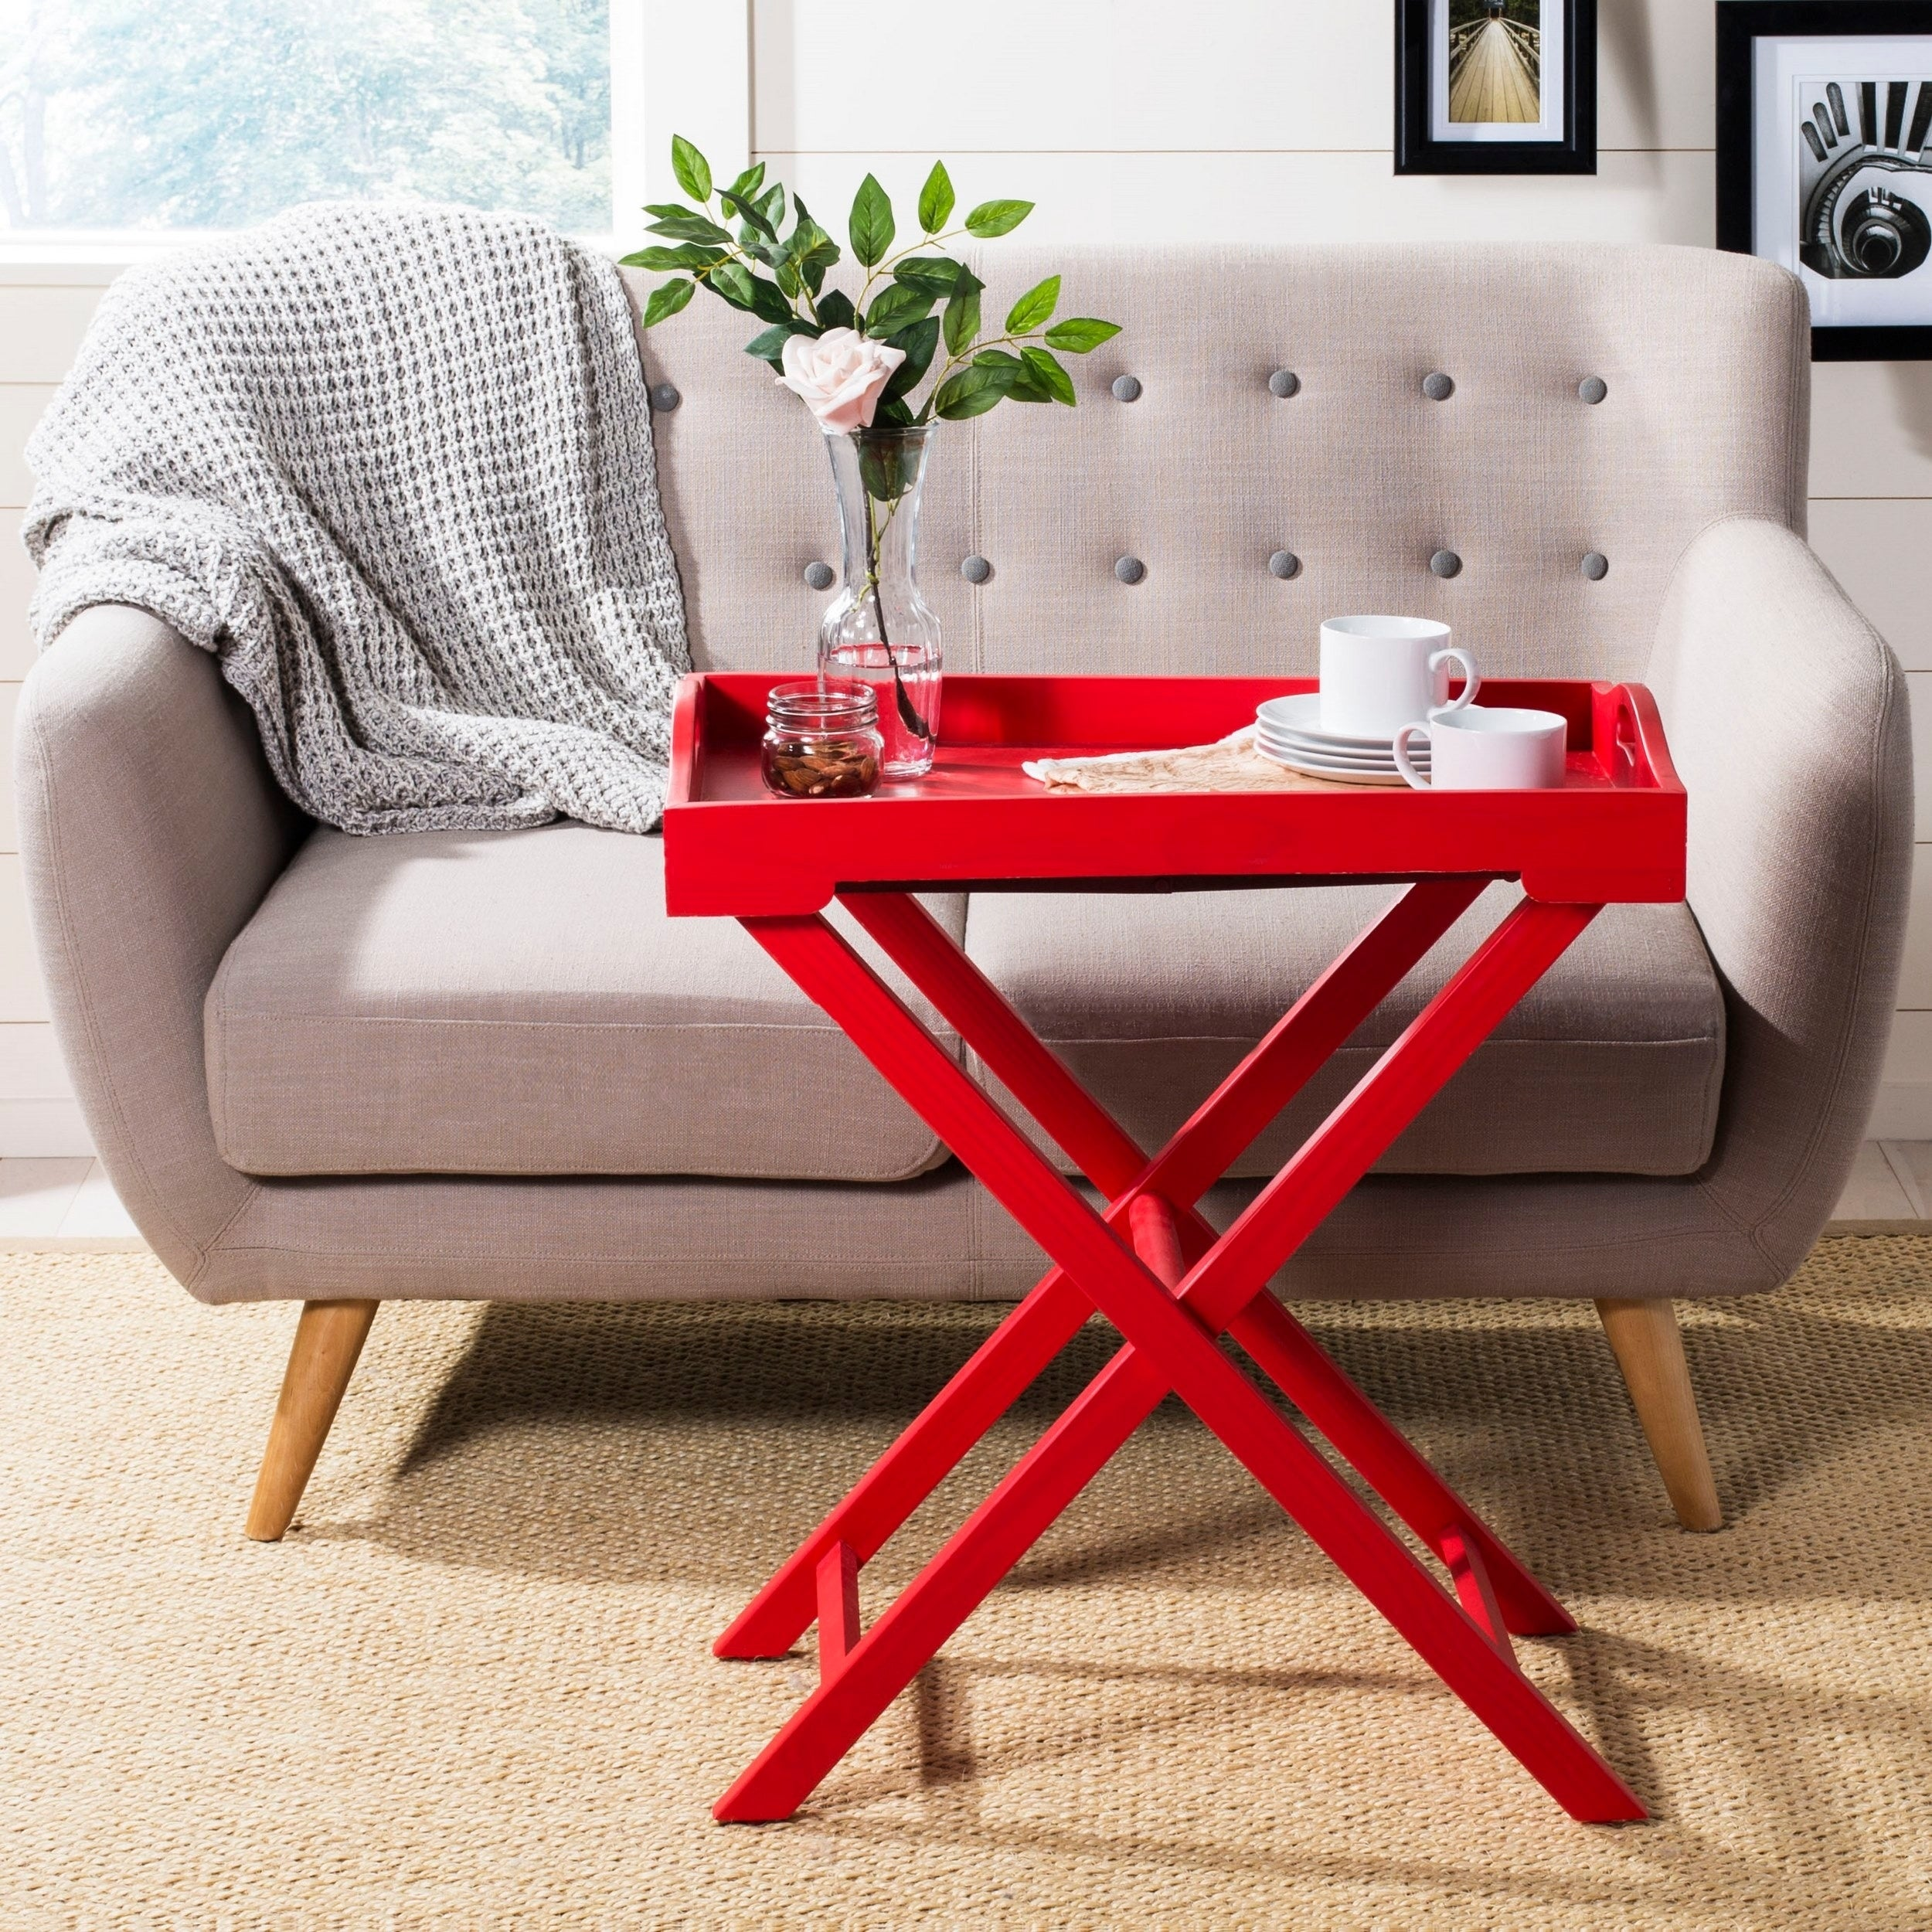 - Shop Safavieh Leo Hot Red Accent Table - 0 - On Sale - Overstock